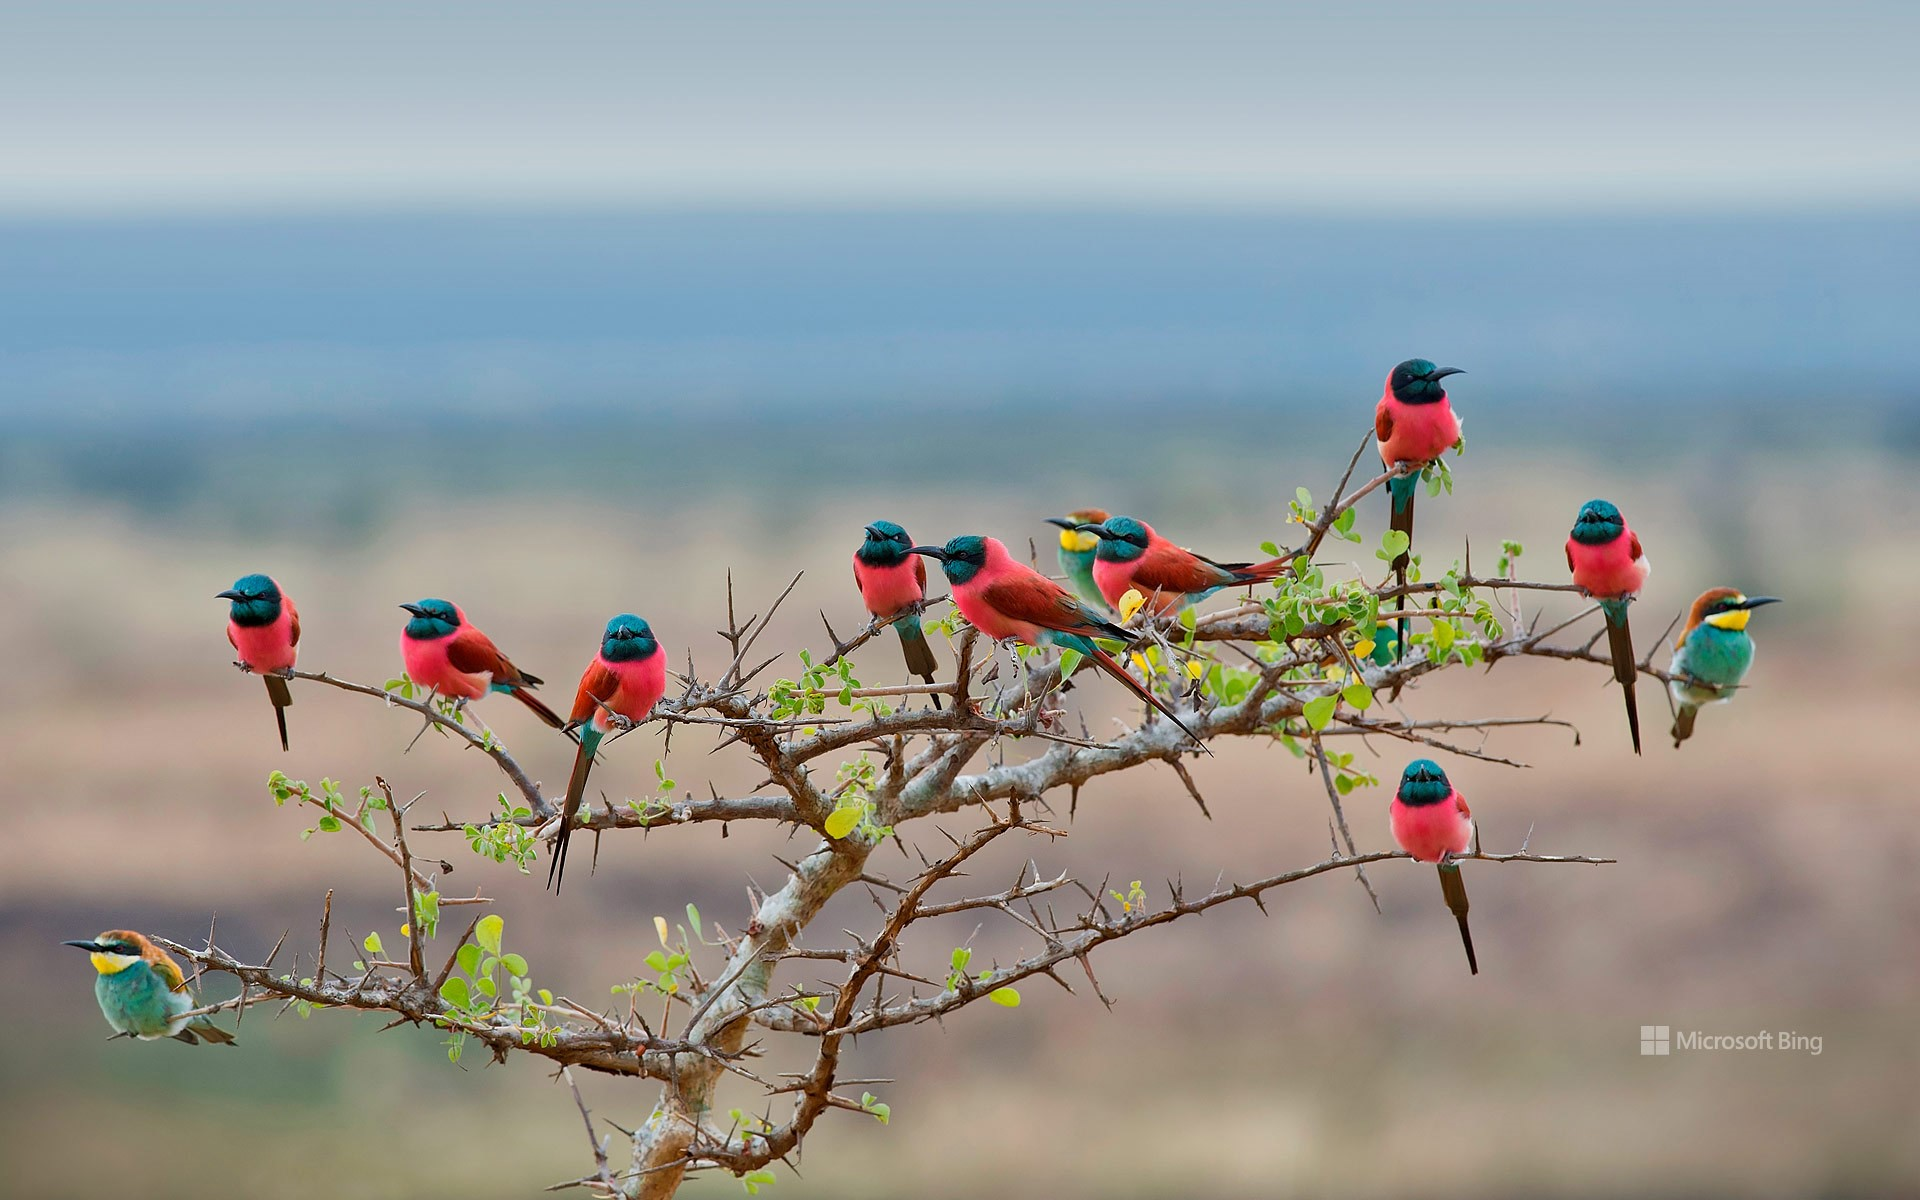 Northern carmine and European bee-eaters in Mkomazi National Park, Tanzania